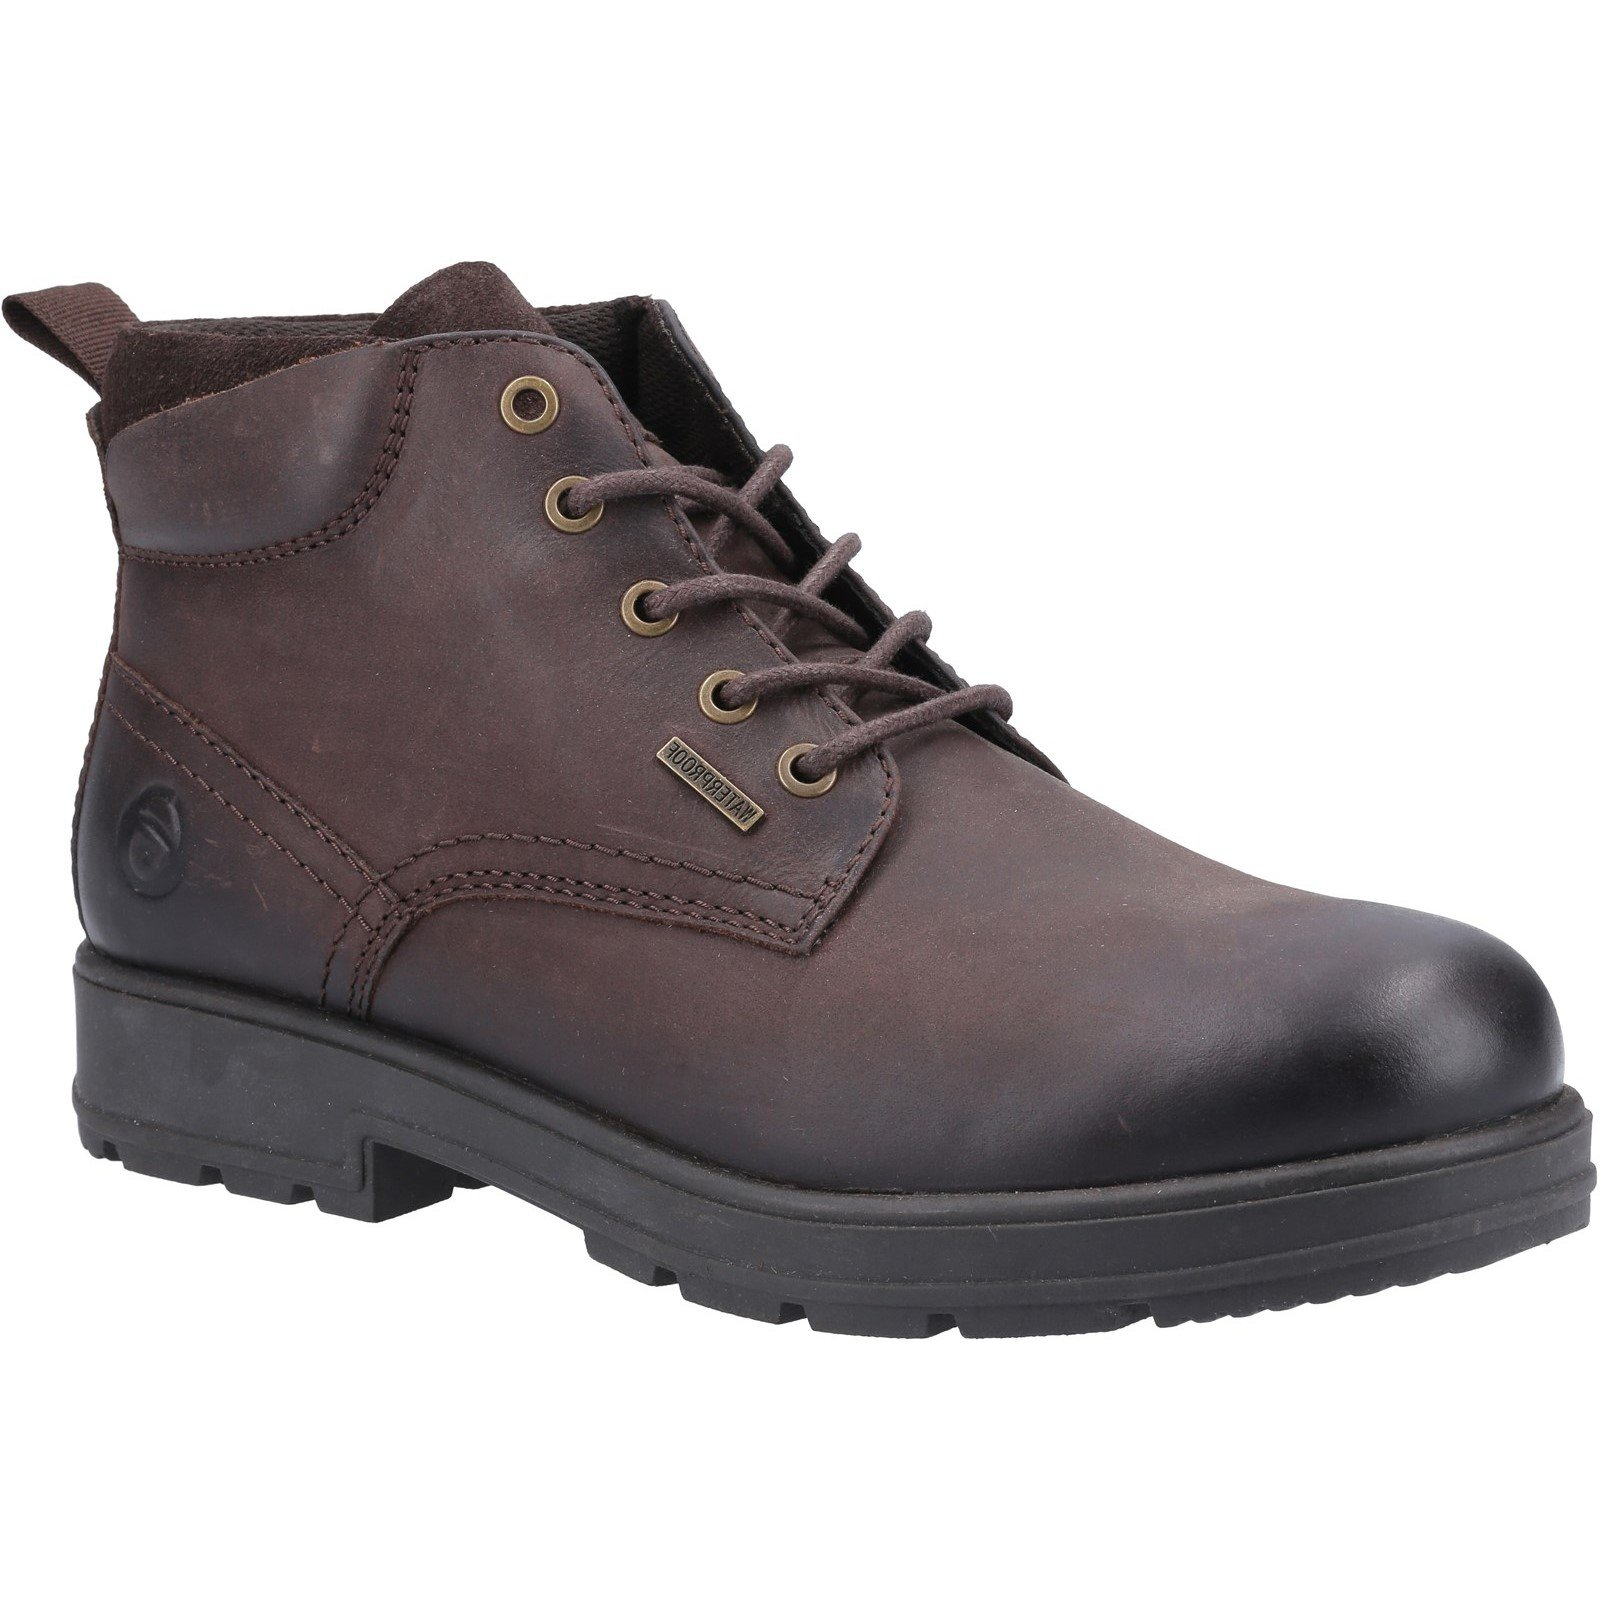 Cotswold Men's Winson Lace Up Boots Brown 32966 - Brown 7